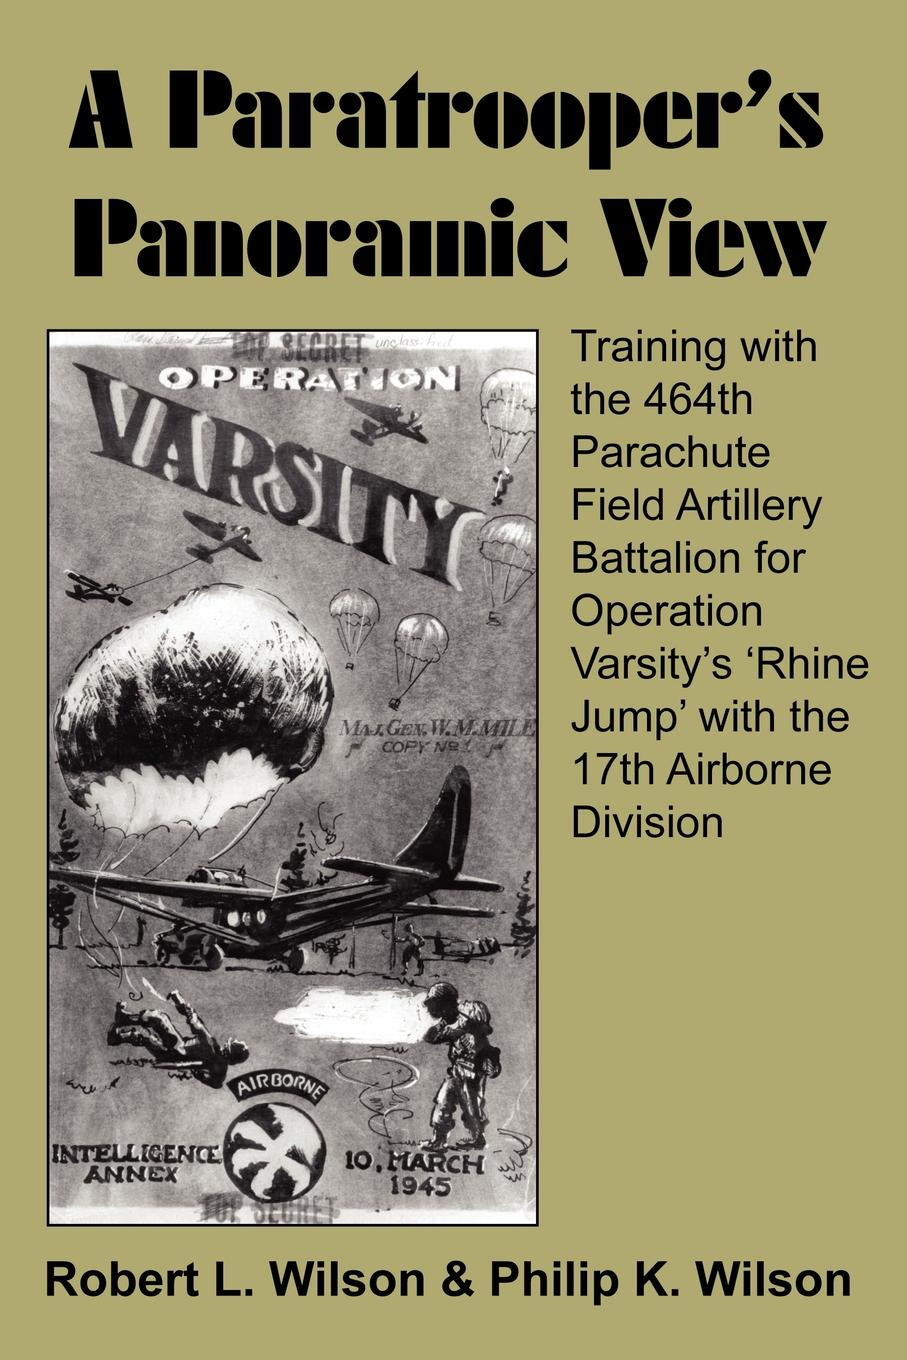 Robert L. Wilson, Philip K. Wilson A Paratrooper's Panoramic View. Training with the 464th Parachute Field Artillery Battalion for Operation Varsity's 'Rhine Jump' with the 17th Airborne Division a room with a view